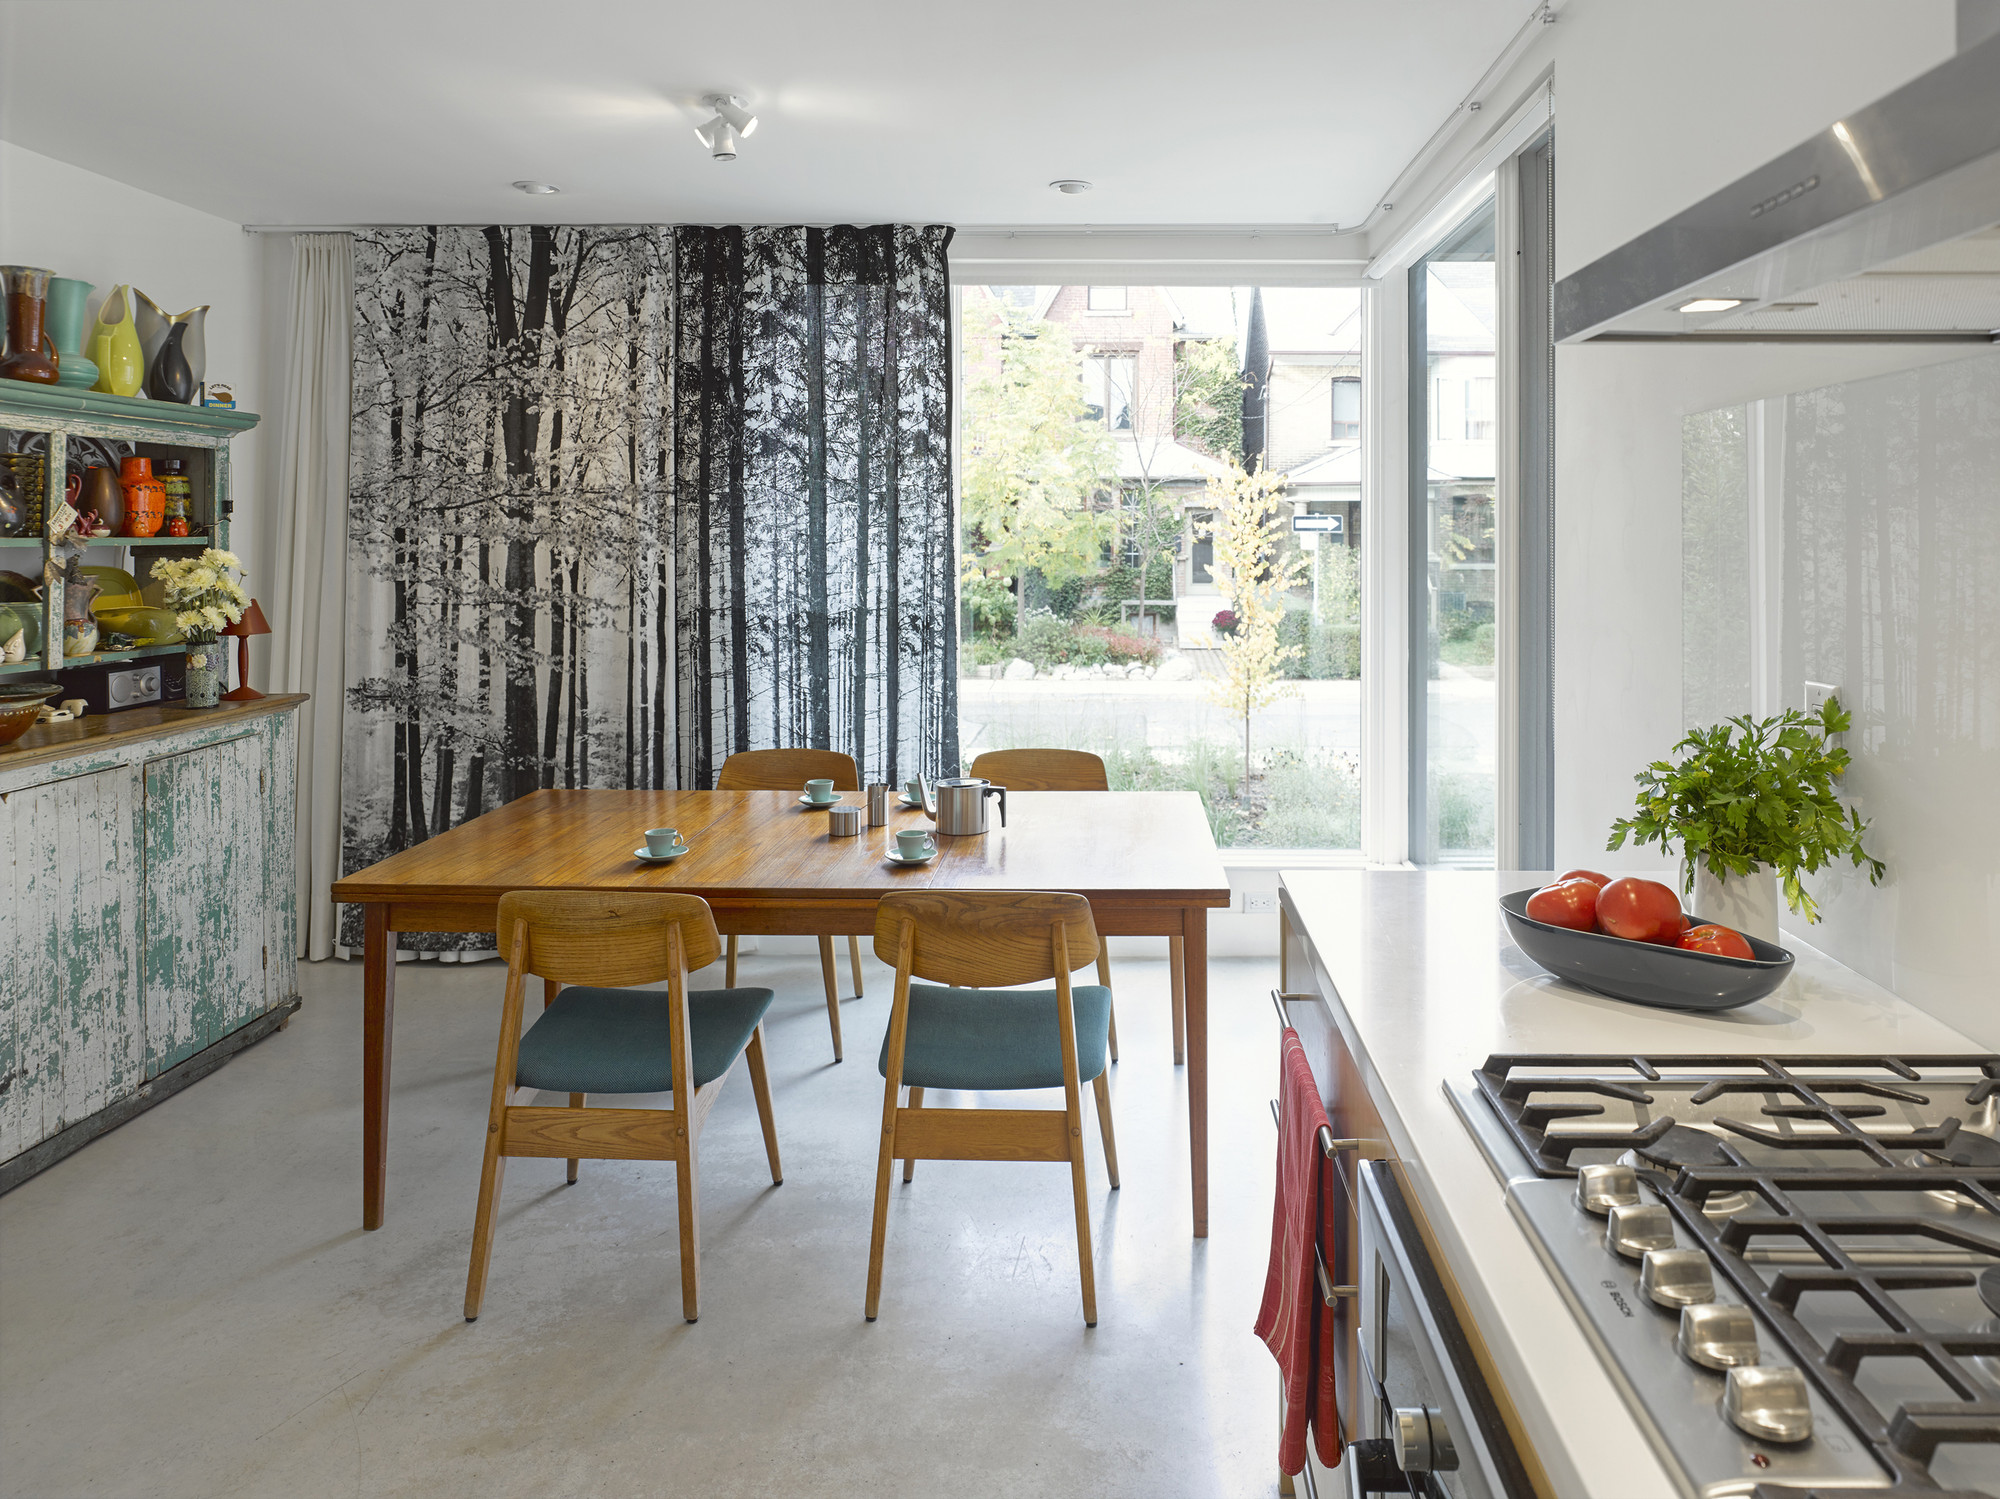 House And Garden Kitchens Garden House Lga Architectural Partners Archdaily